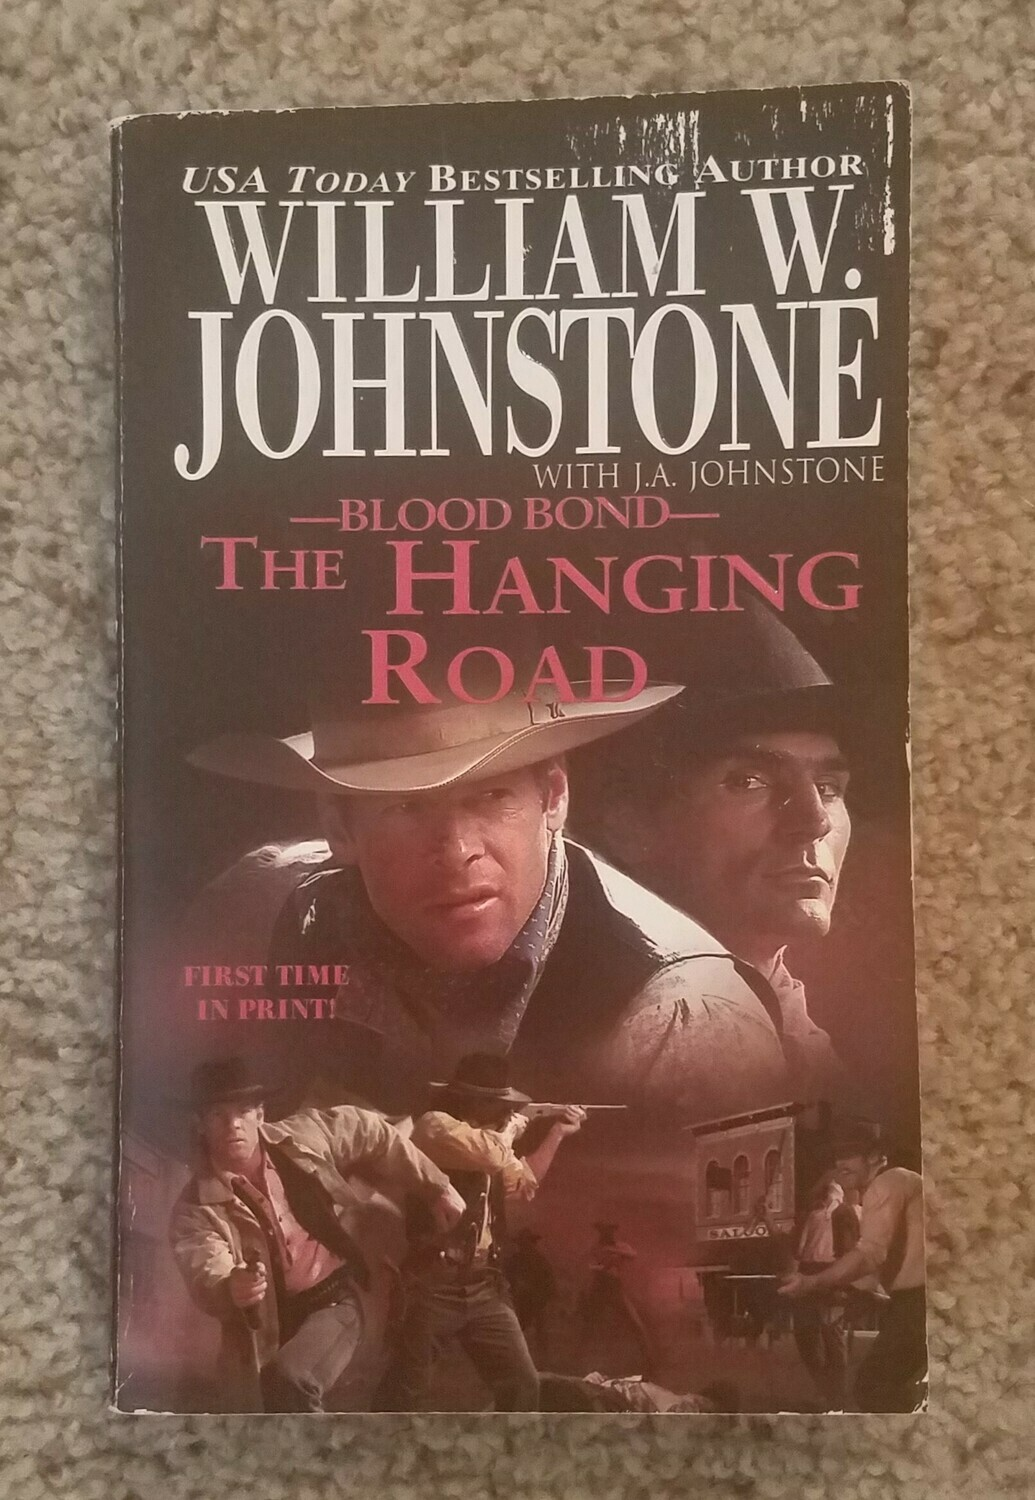 Blood Bond: The Hanging Road by William W. Johnstone with J.A. Johnstone